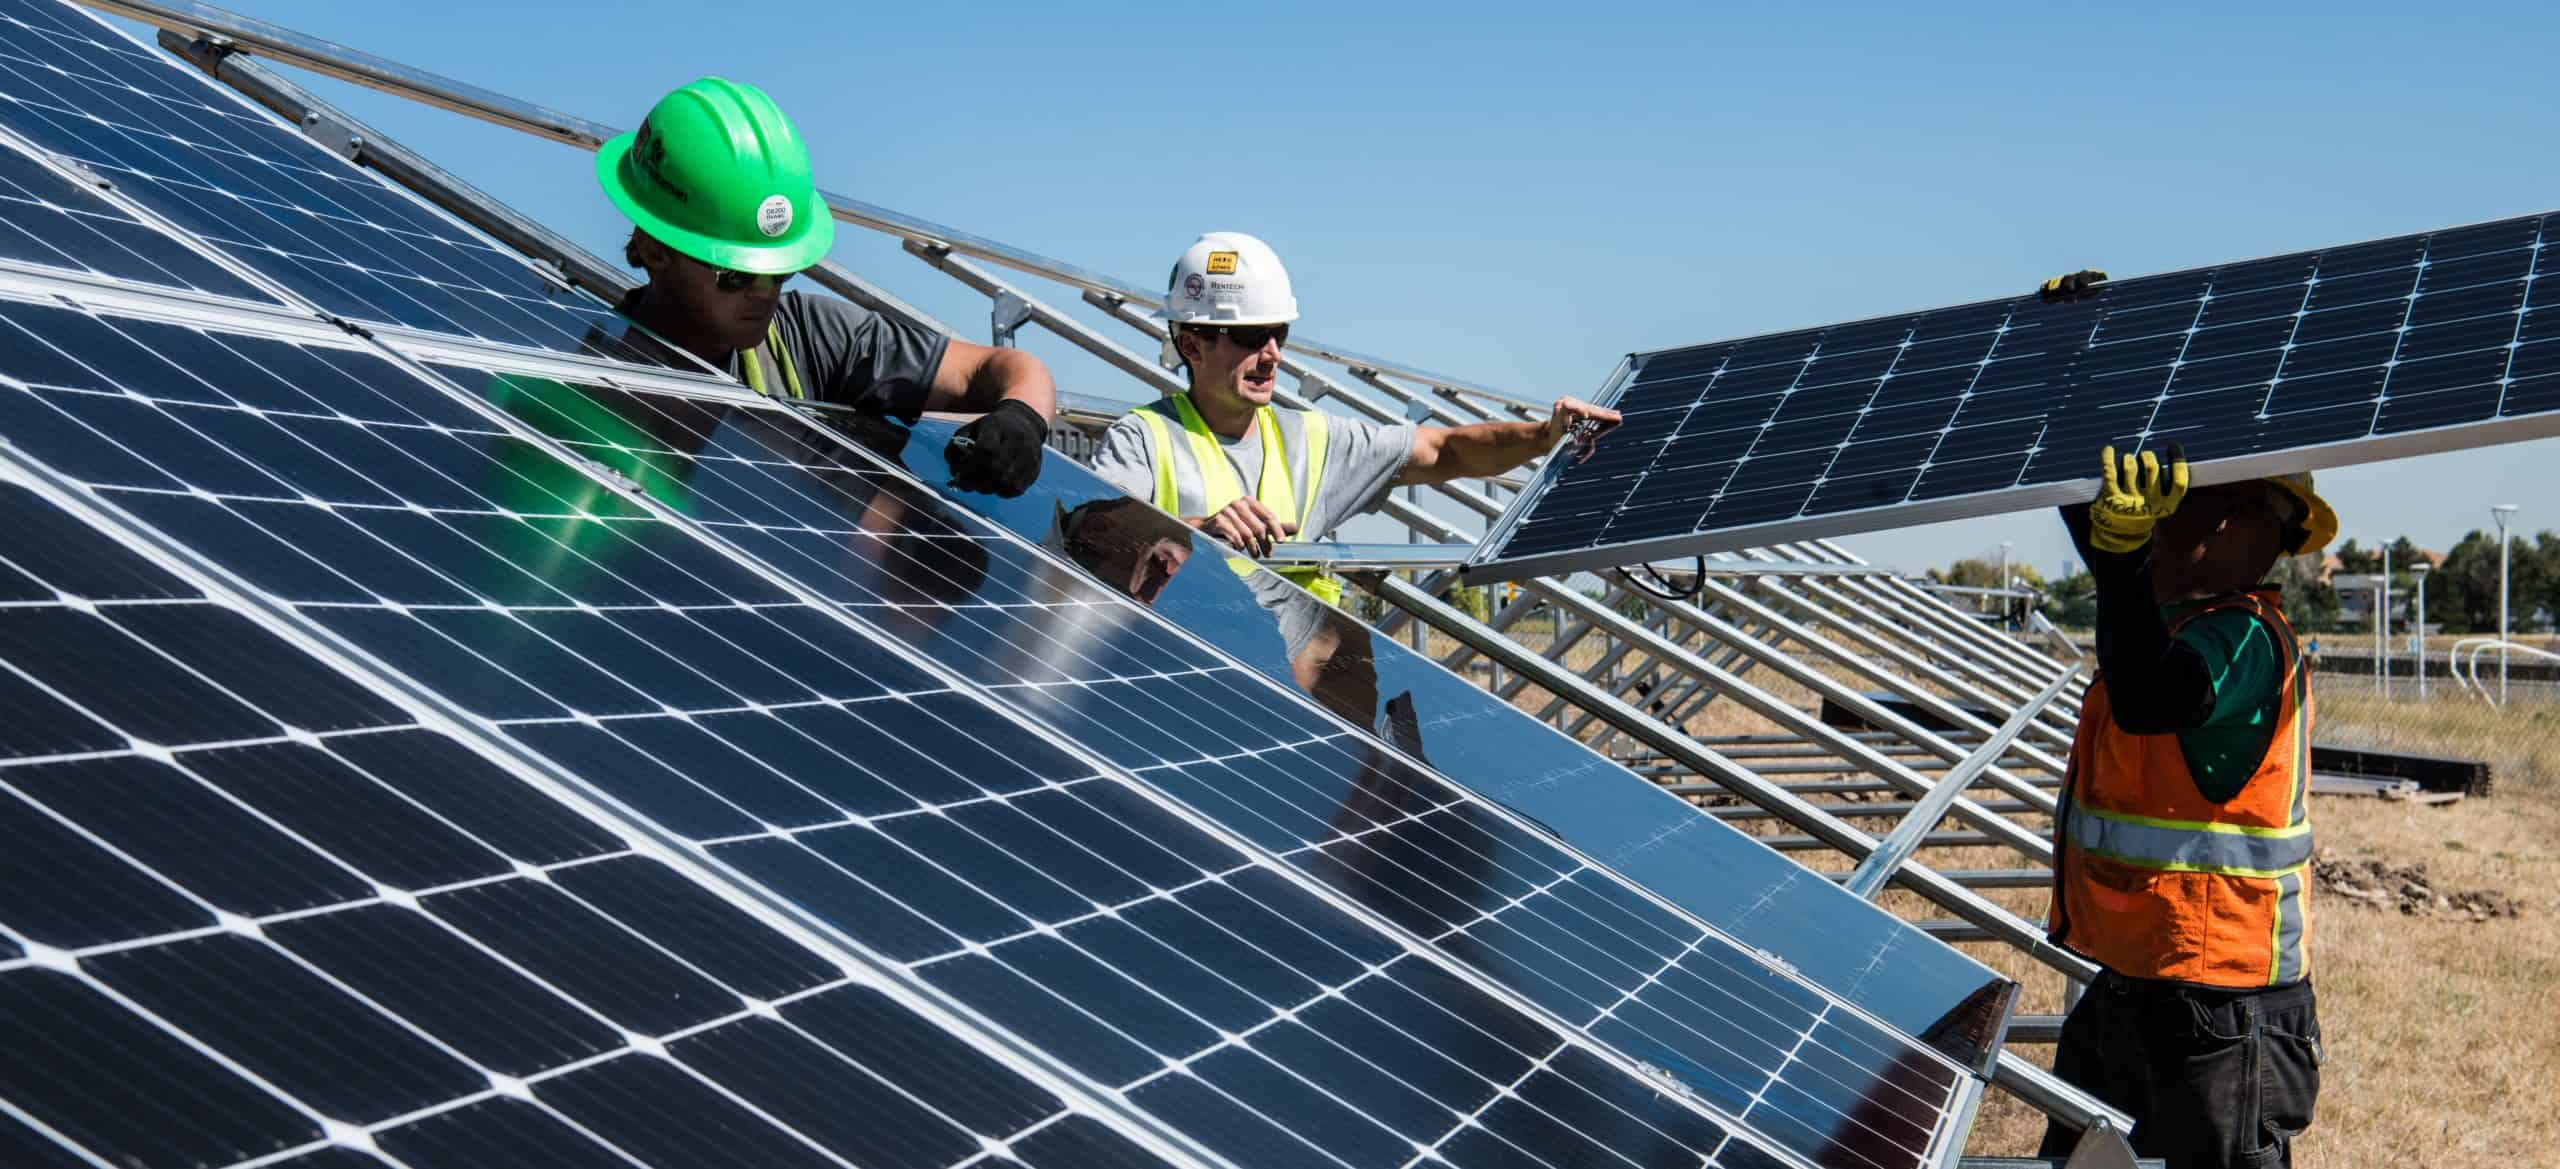 Featured image for Solar Jobs Up Nationwide and in 31 States After Two Years of Losses